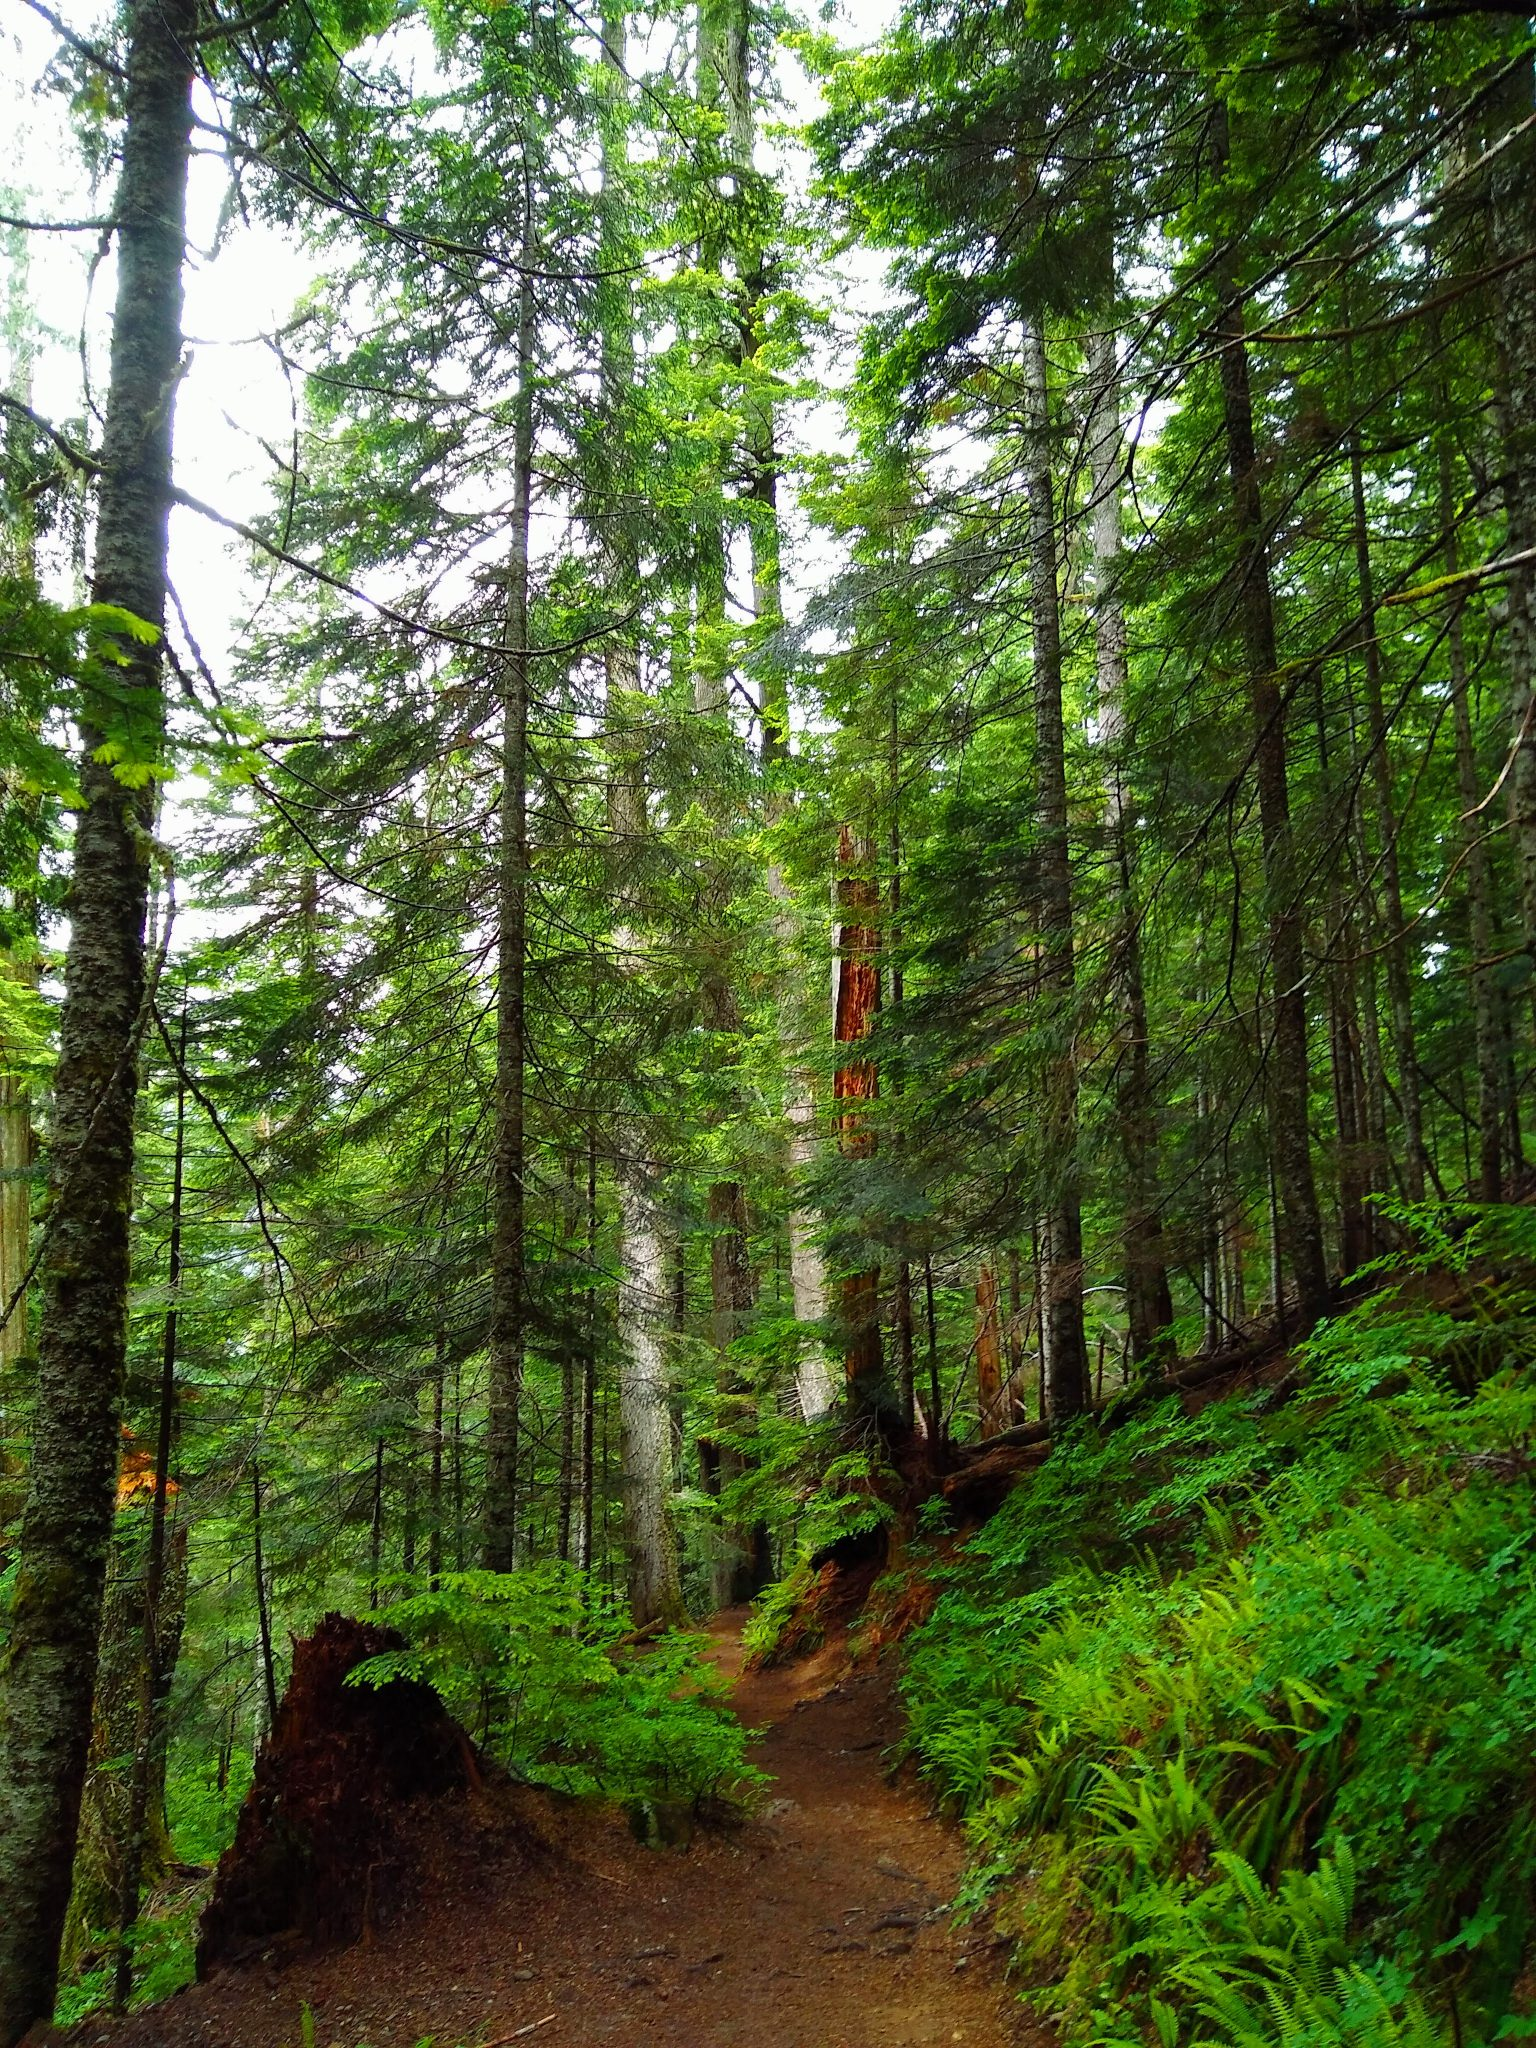 A hiking trail winds through green trees and green underbrush in the forest along the trail on the Annette Lake hike